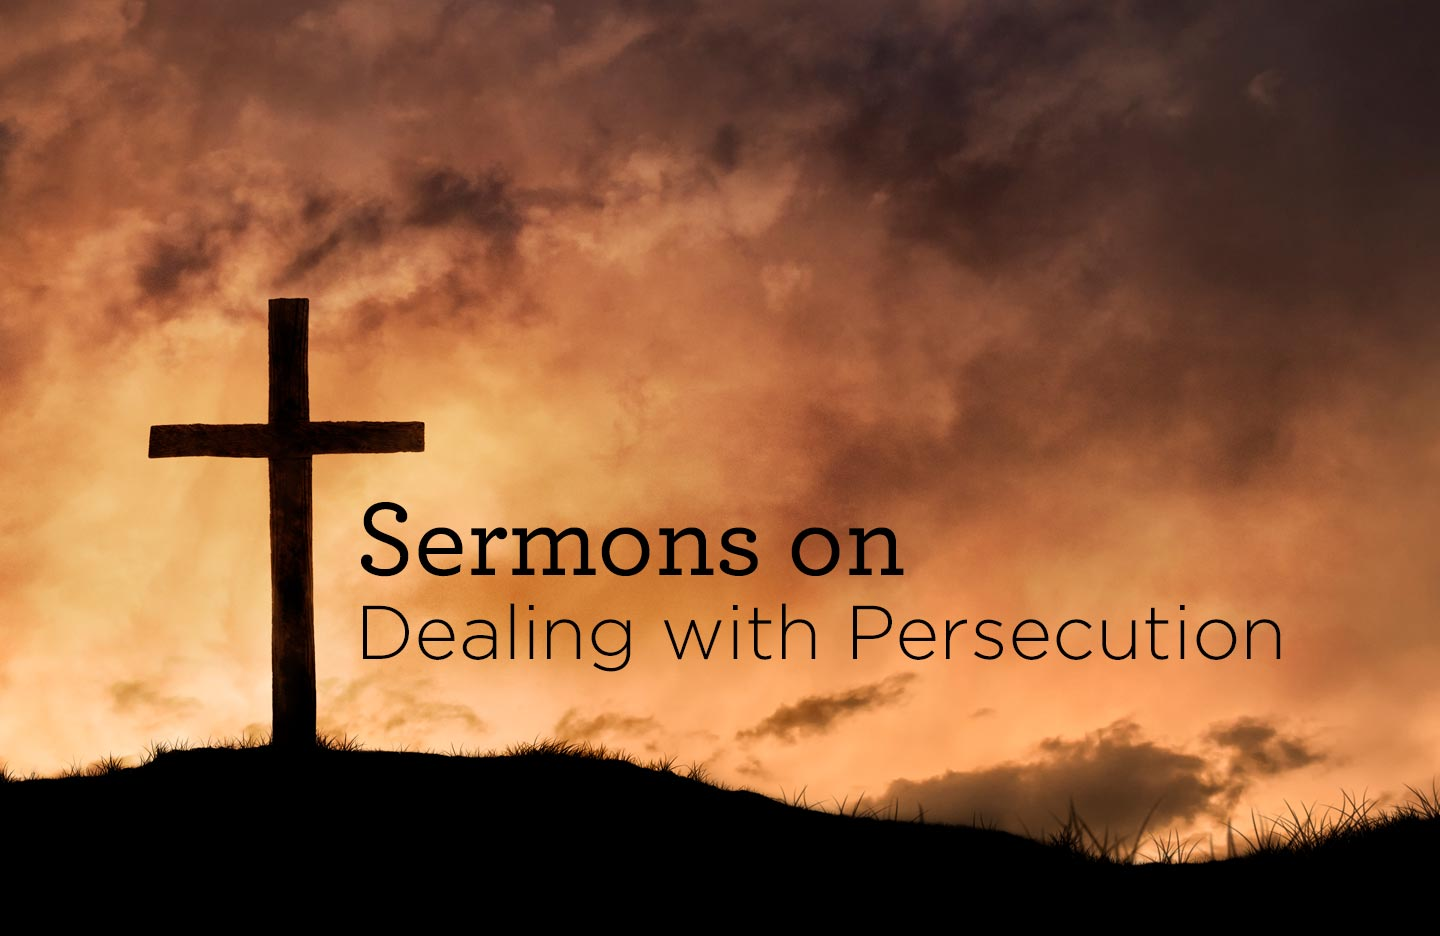 Sermons on Dealing with Persecution.jpg